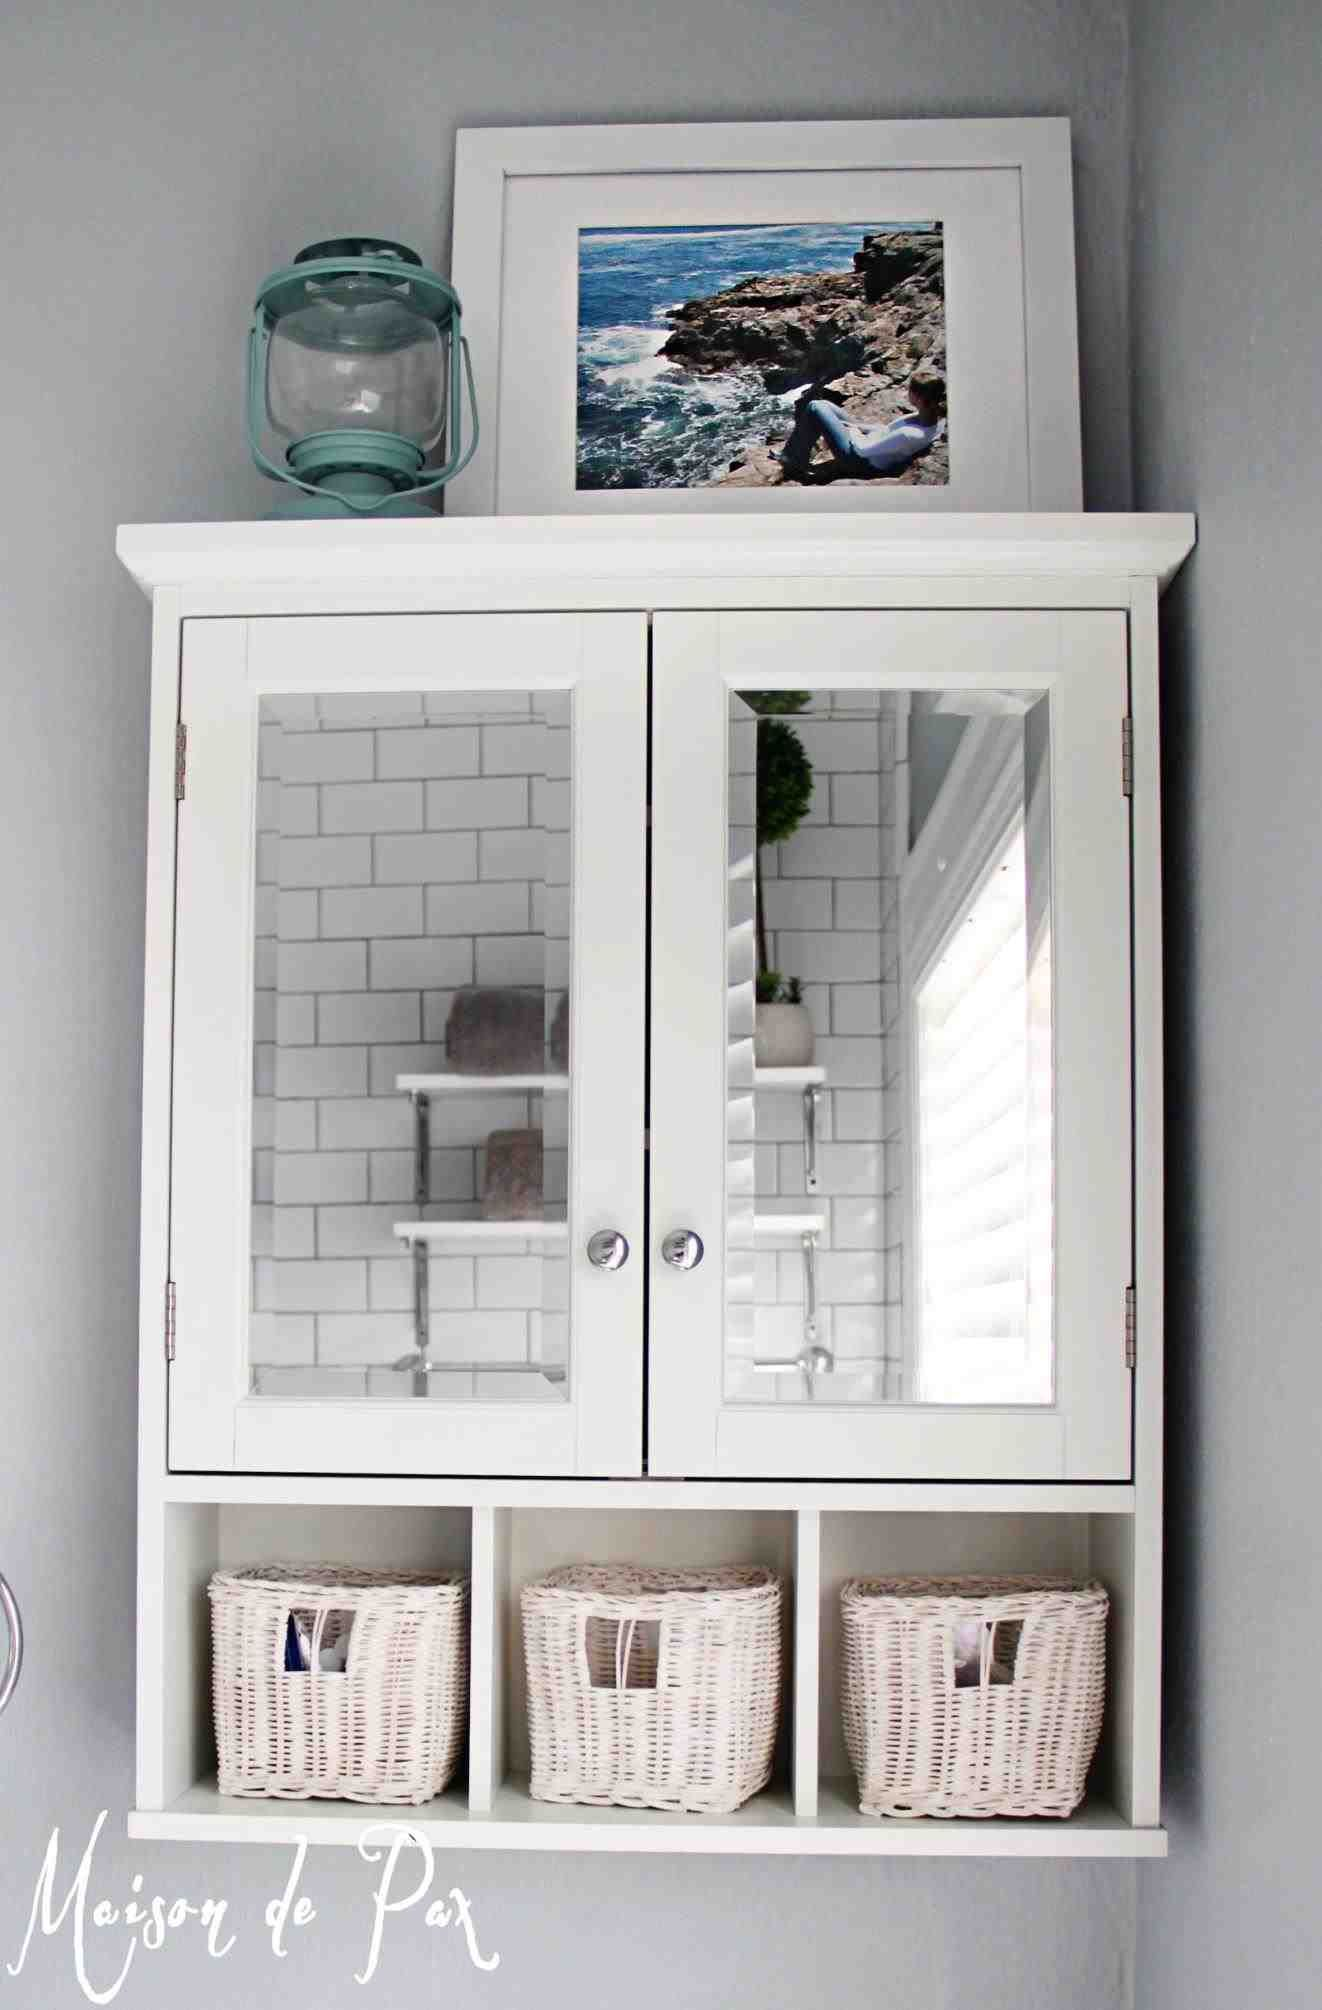 New White Bathroom Wall Cabinet With Towel Bar At Temasistemi Net Bathroom Cabinets Over Toilet Bathroom Wall Cabinets Small Bathroom Storage